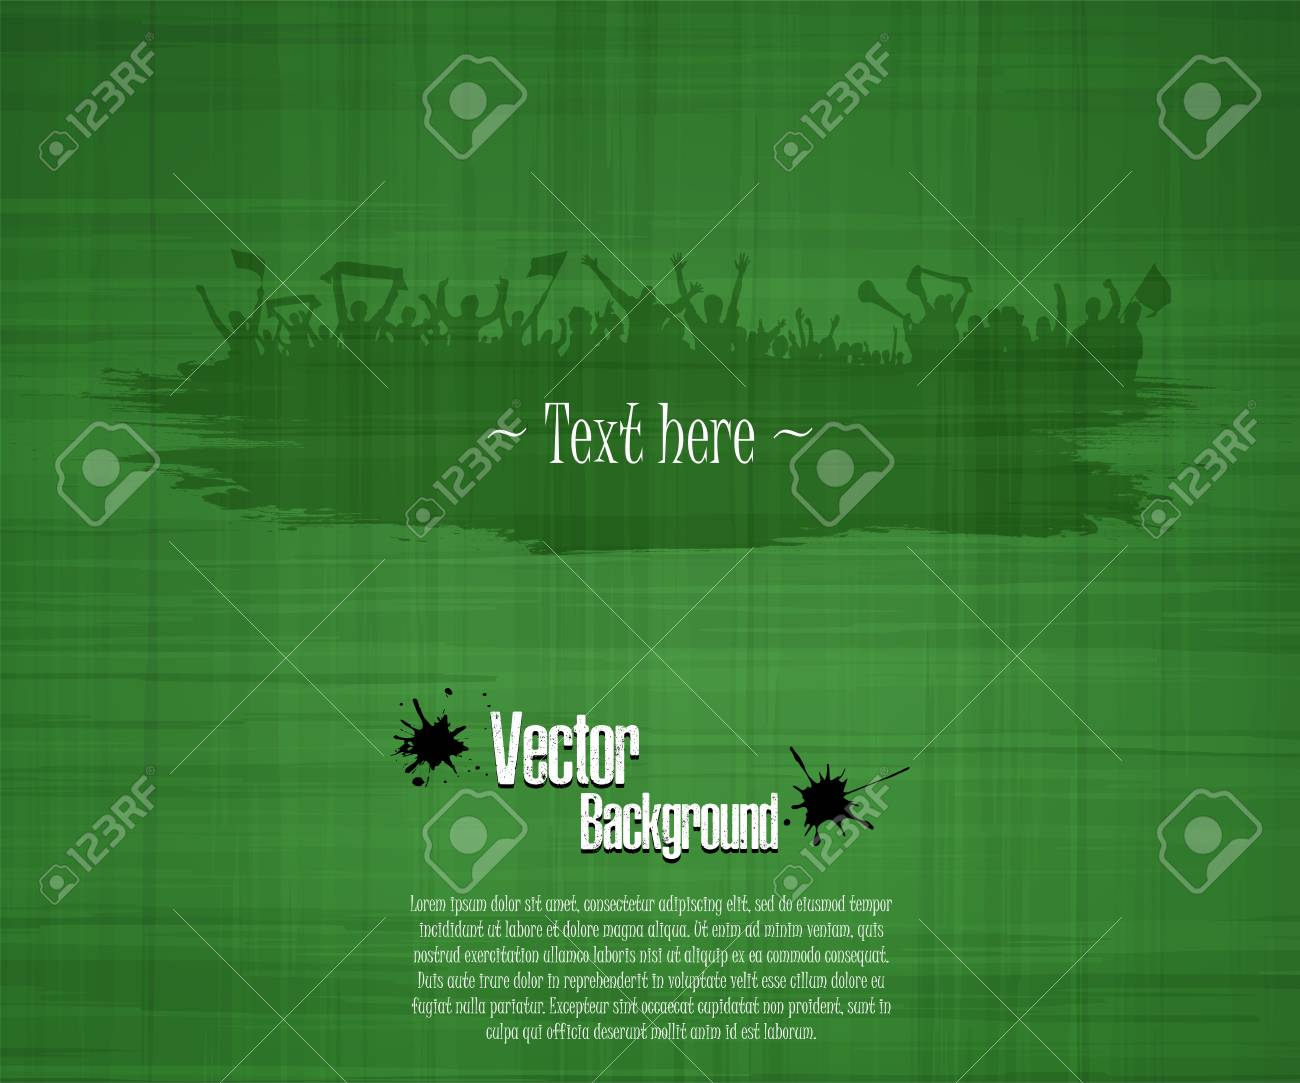 Grunge Background For Sporting Events And Concerts Grunge Banner Royalty Free Cliparts Vectors And Stock Illustration Image 104947545